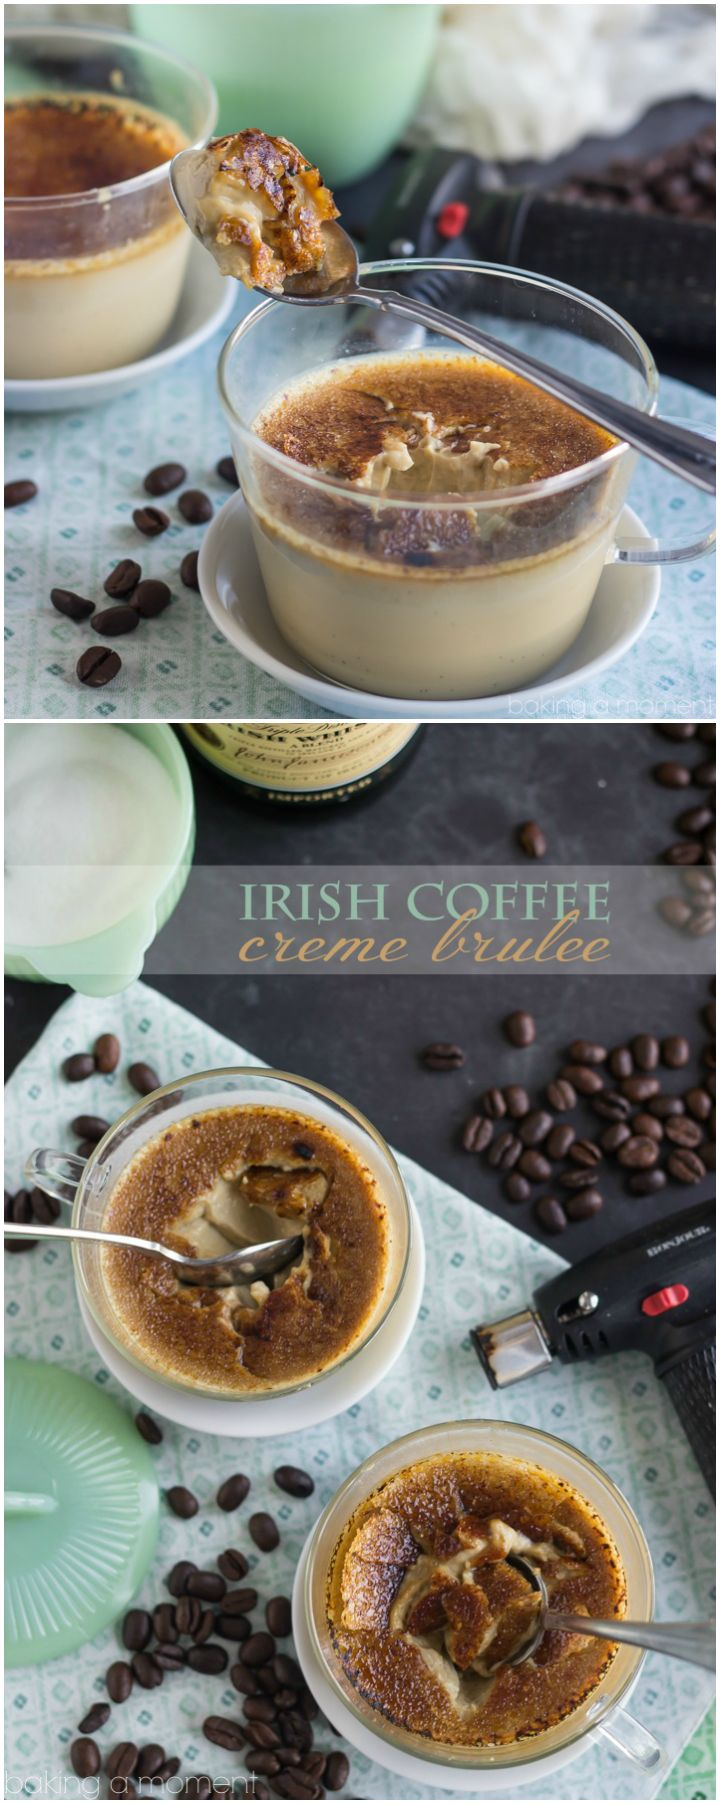 I made this Irish Coffee Creme Brulee in just 10 minutes and it was the bomb! The crackly burnt sugar was sooo good with the coffee and boozy flavors!